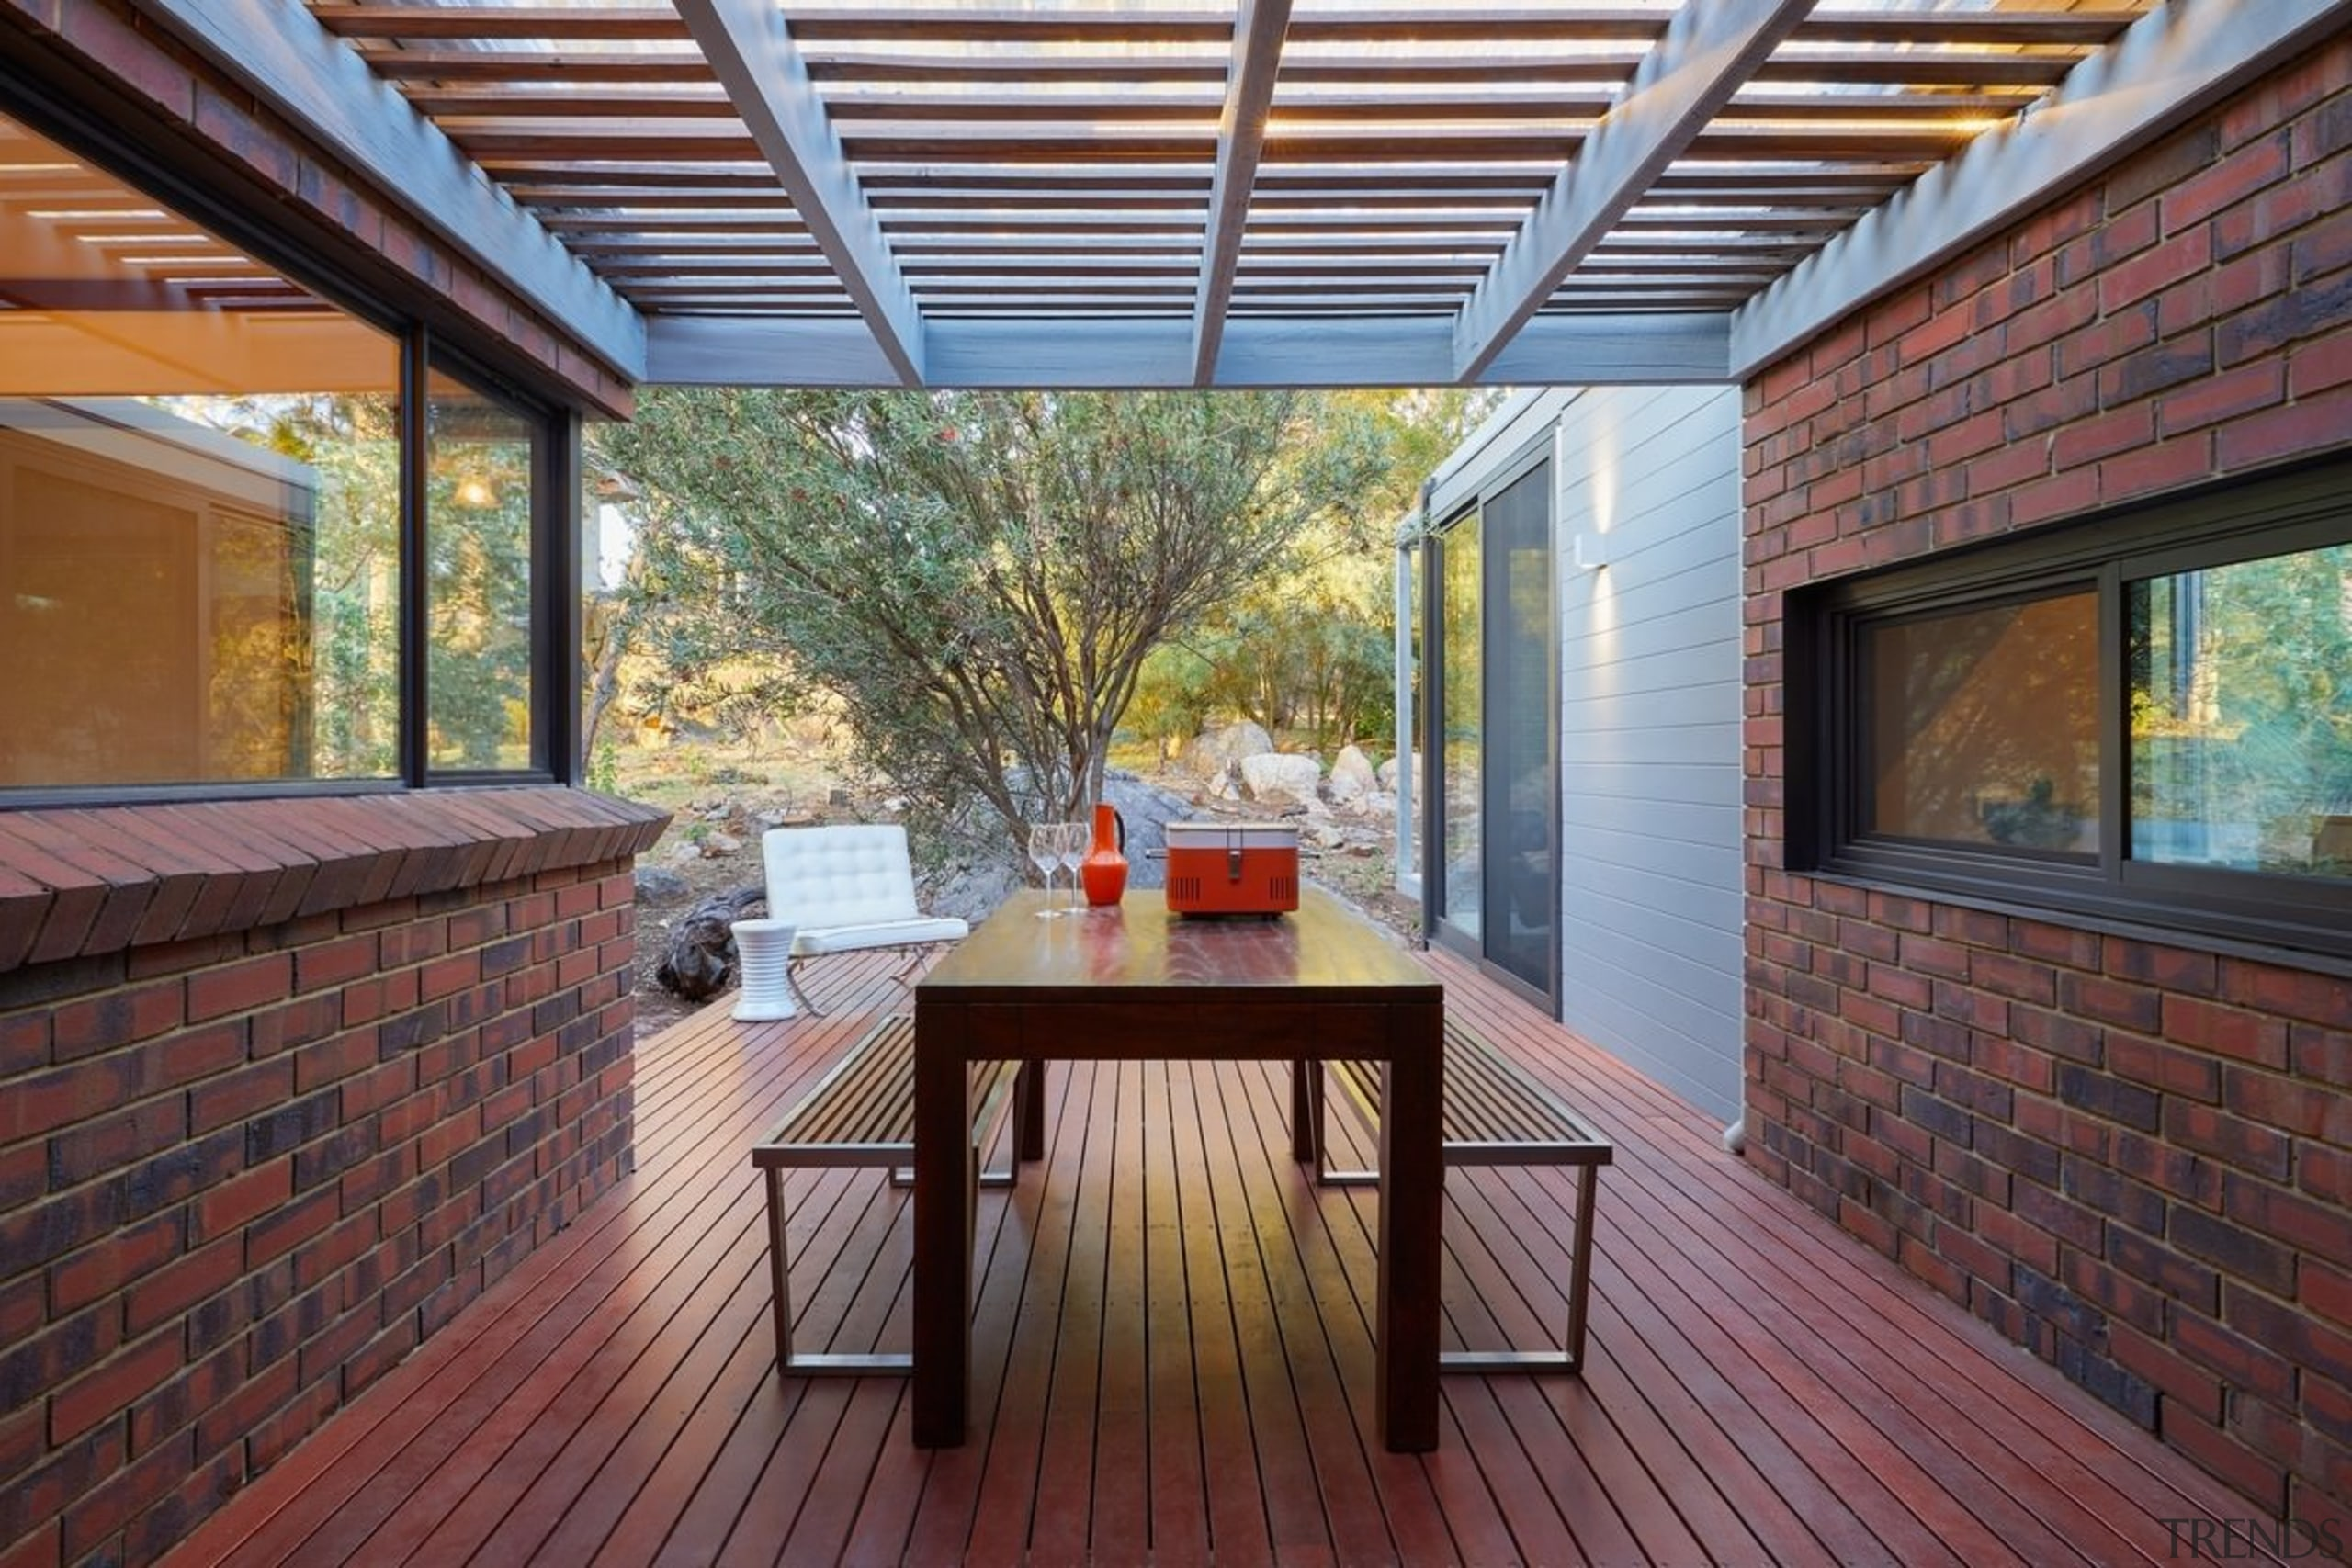 A view of the outdoor room - A architecture, daylighting, deck, hardwood, house, interior design, outdoor structure, patio, real estate, roof, wood, gray, red